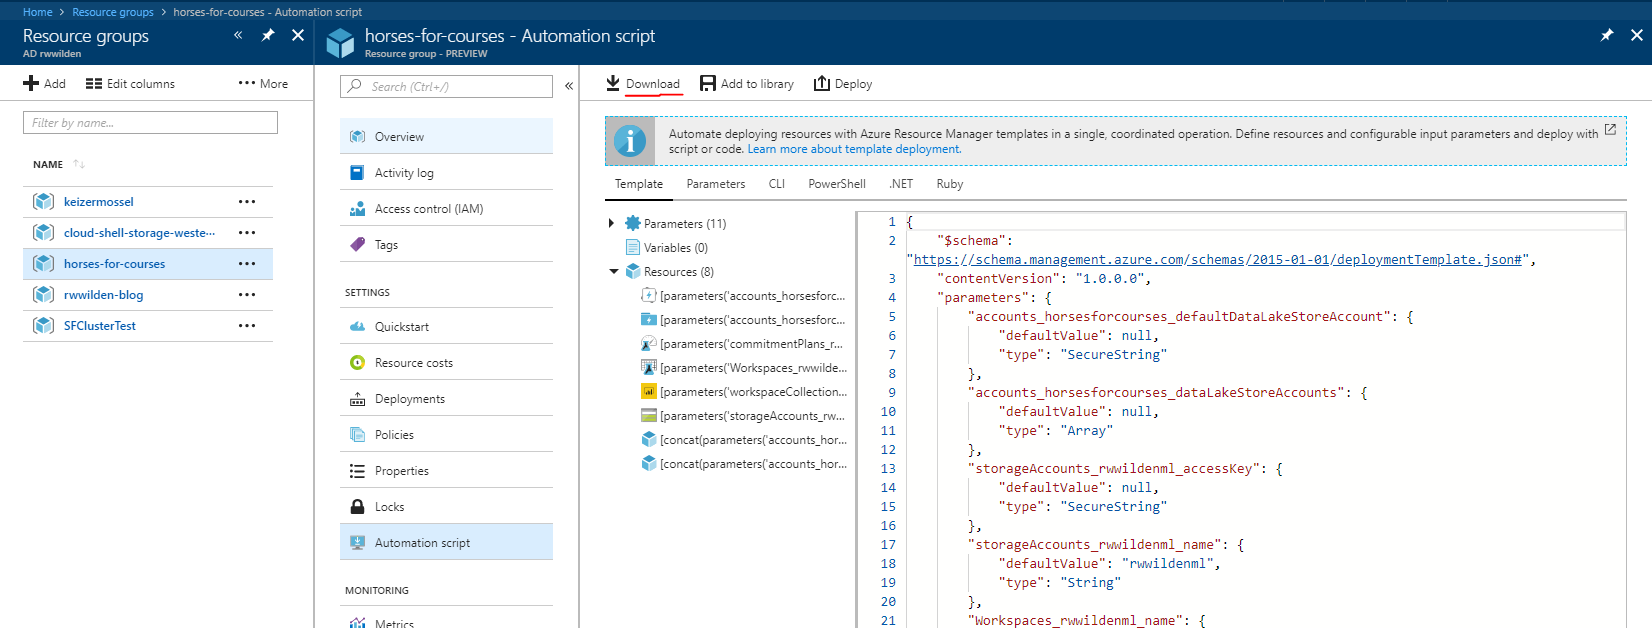 Tips for working with Azure Resource Manager (templates)